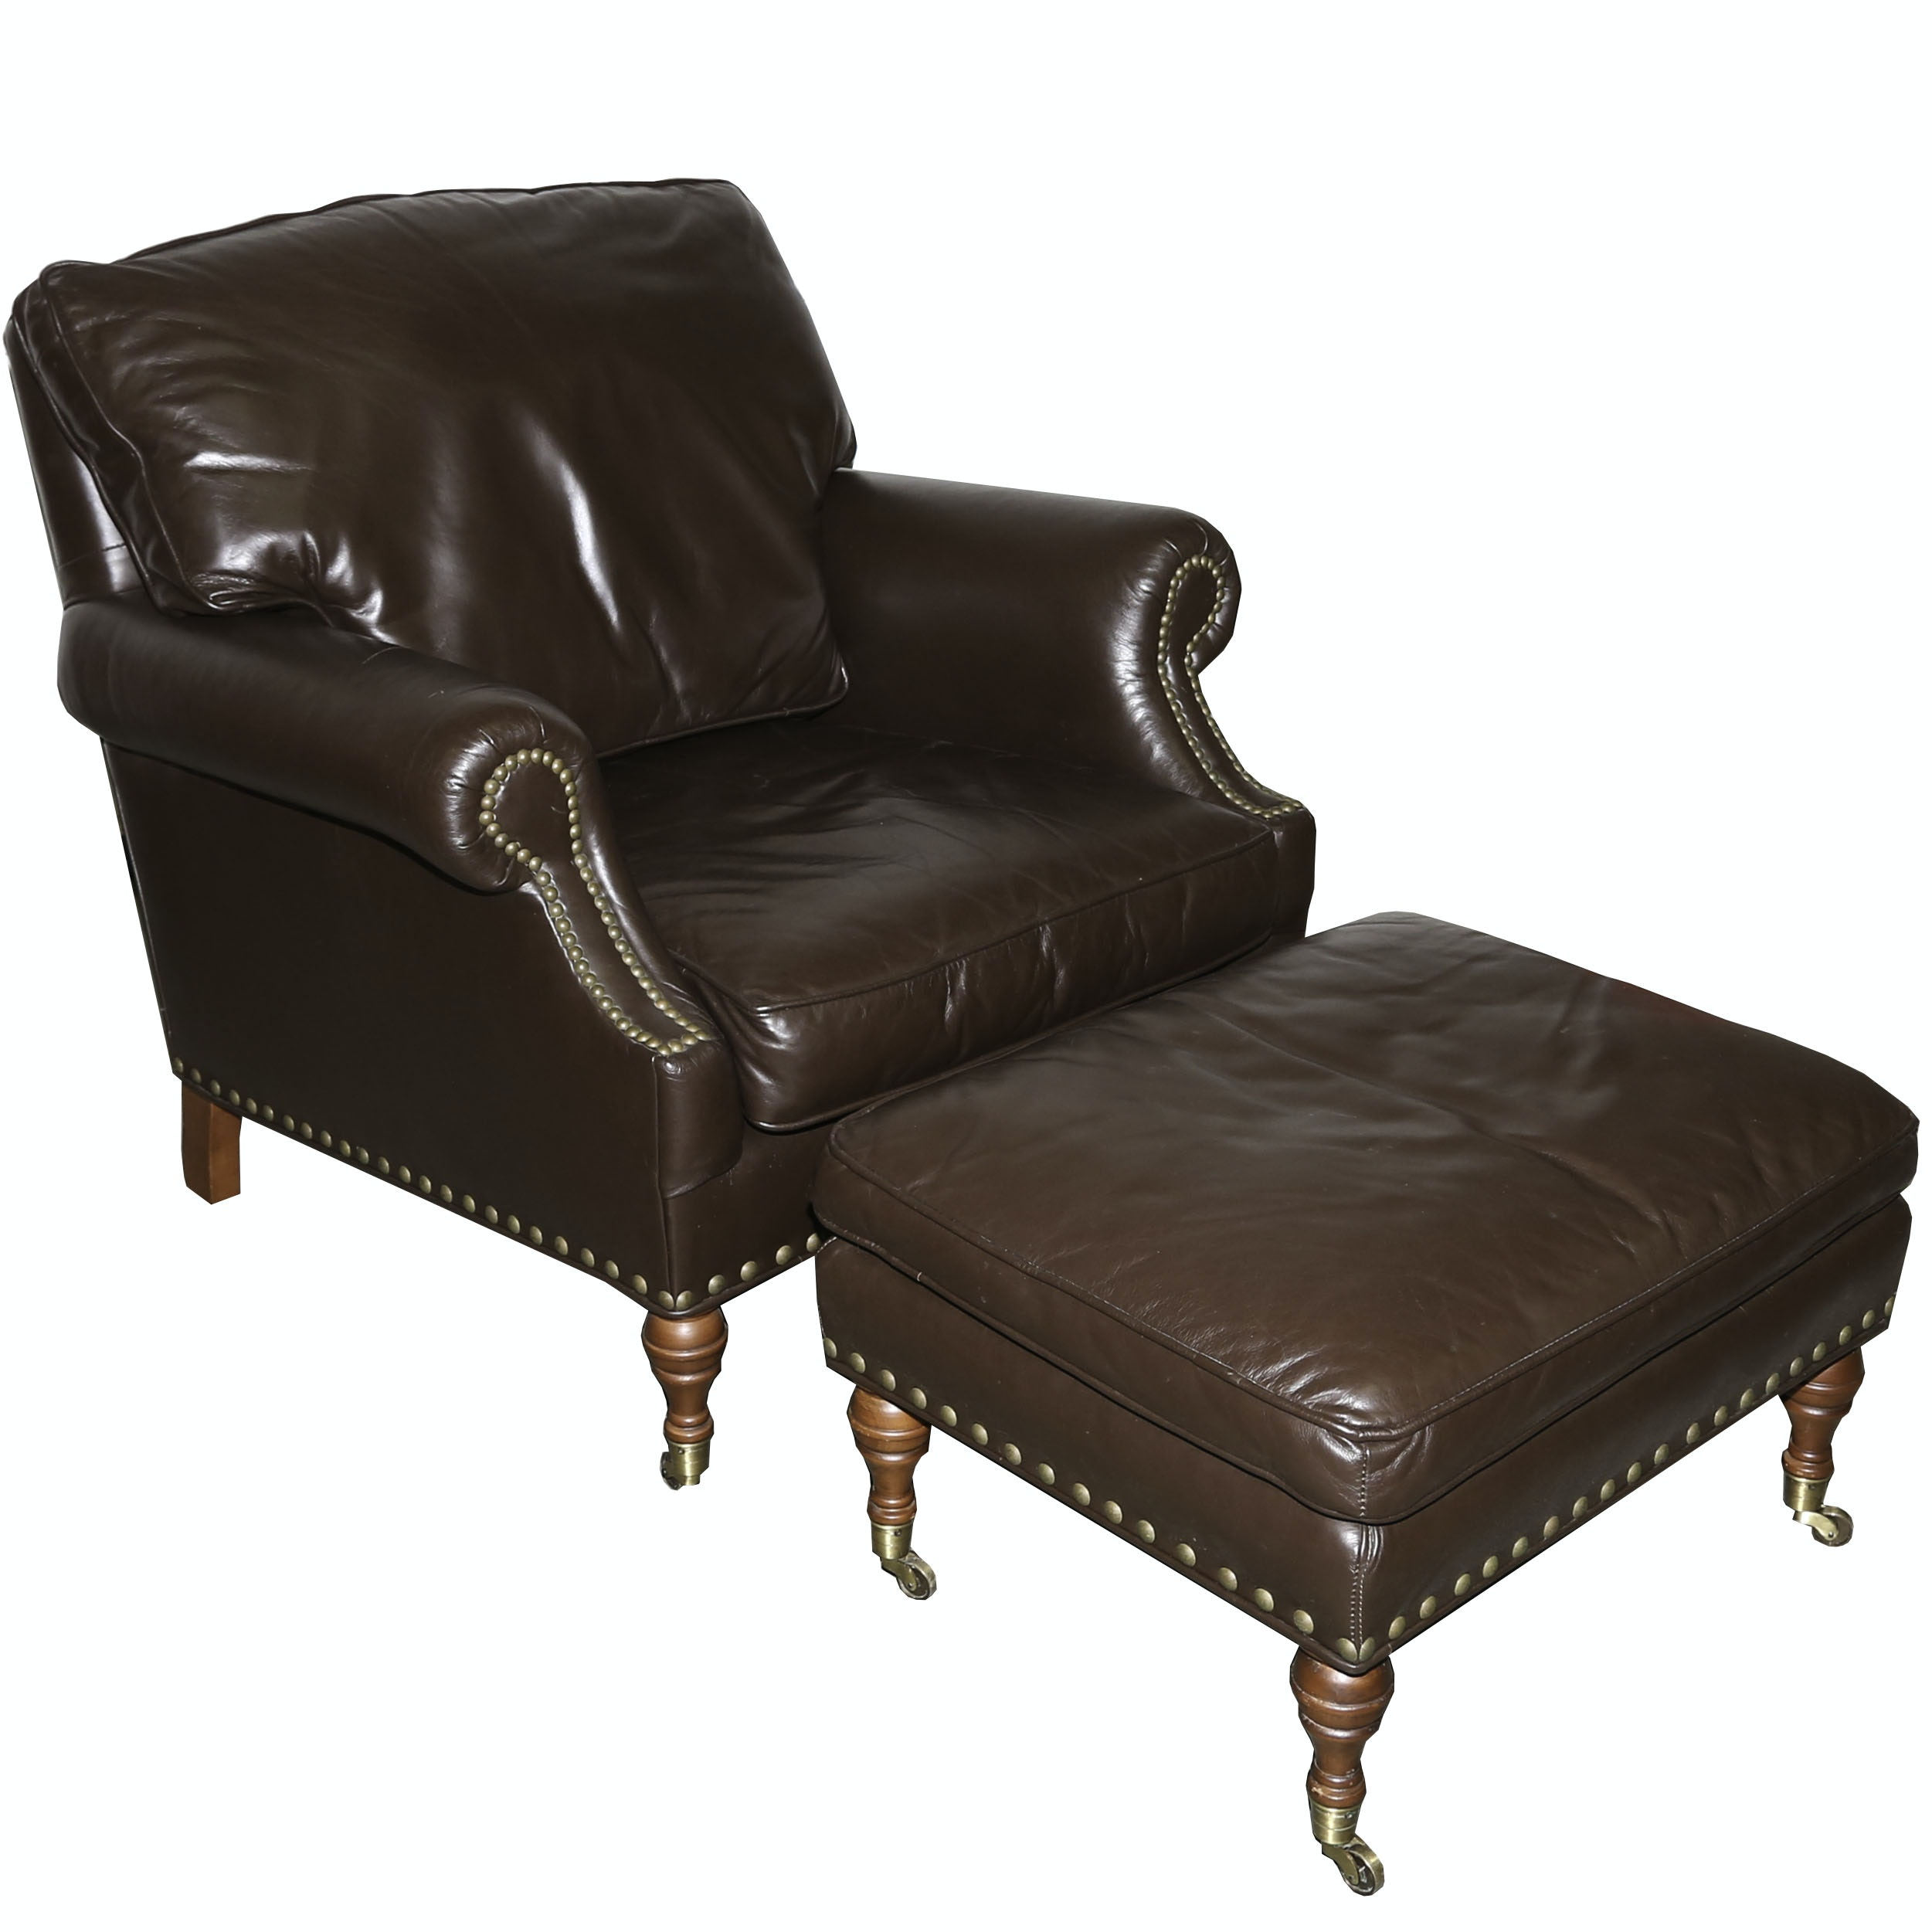 Leather Library Chair and Ottoman from McKinley Leather